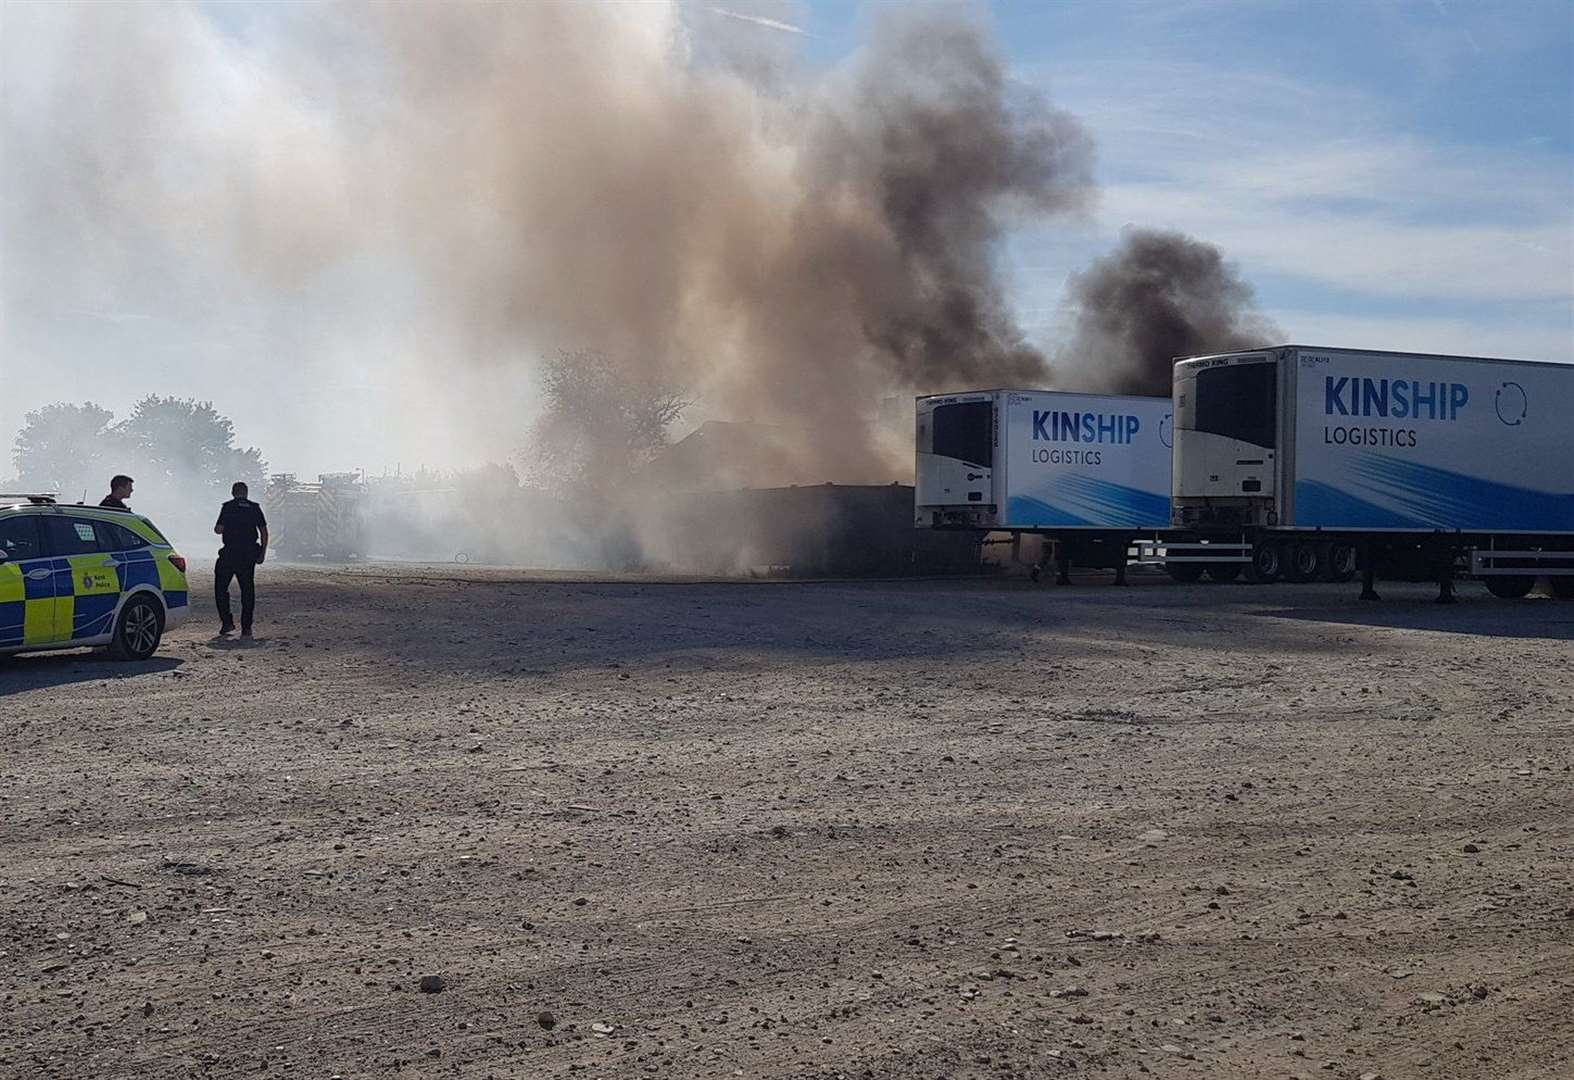 Lorry trailer on fire